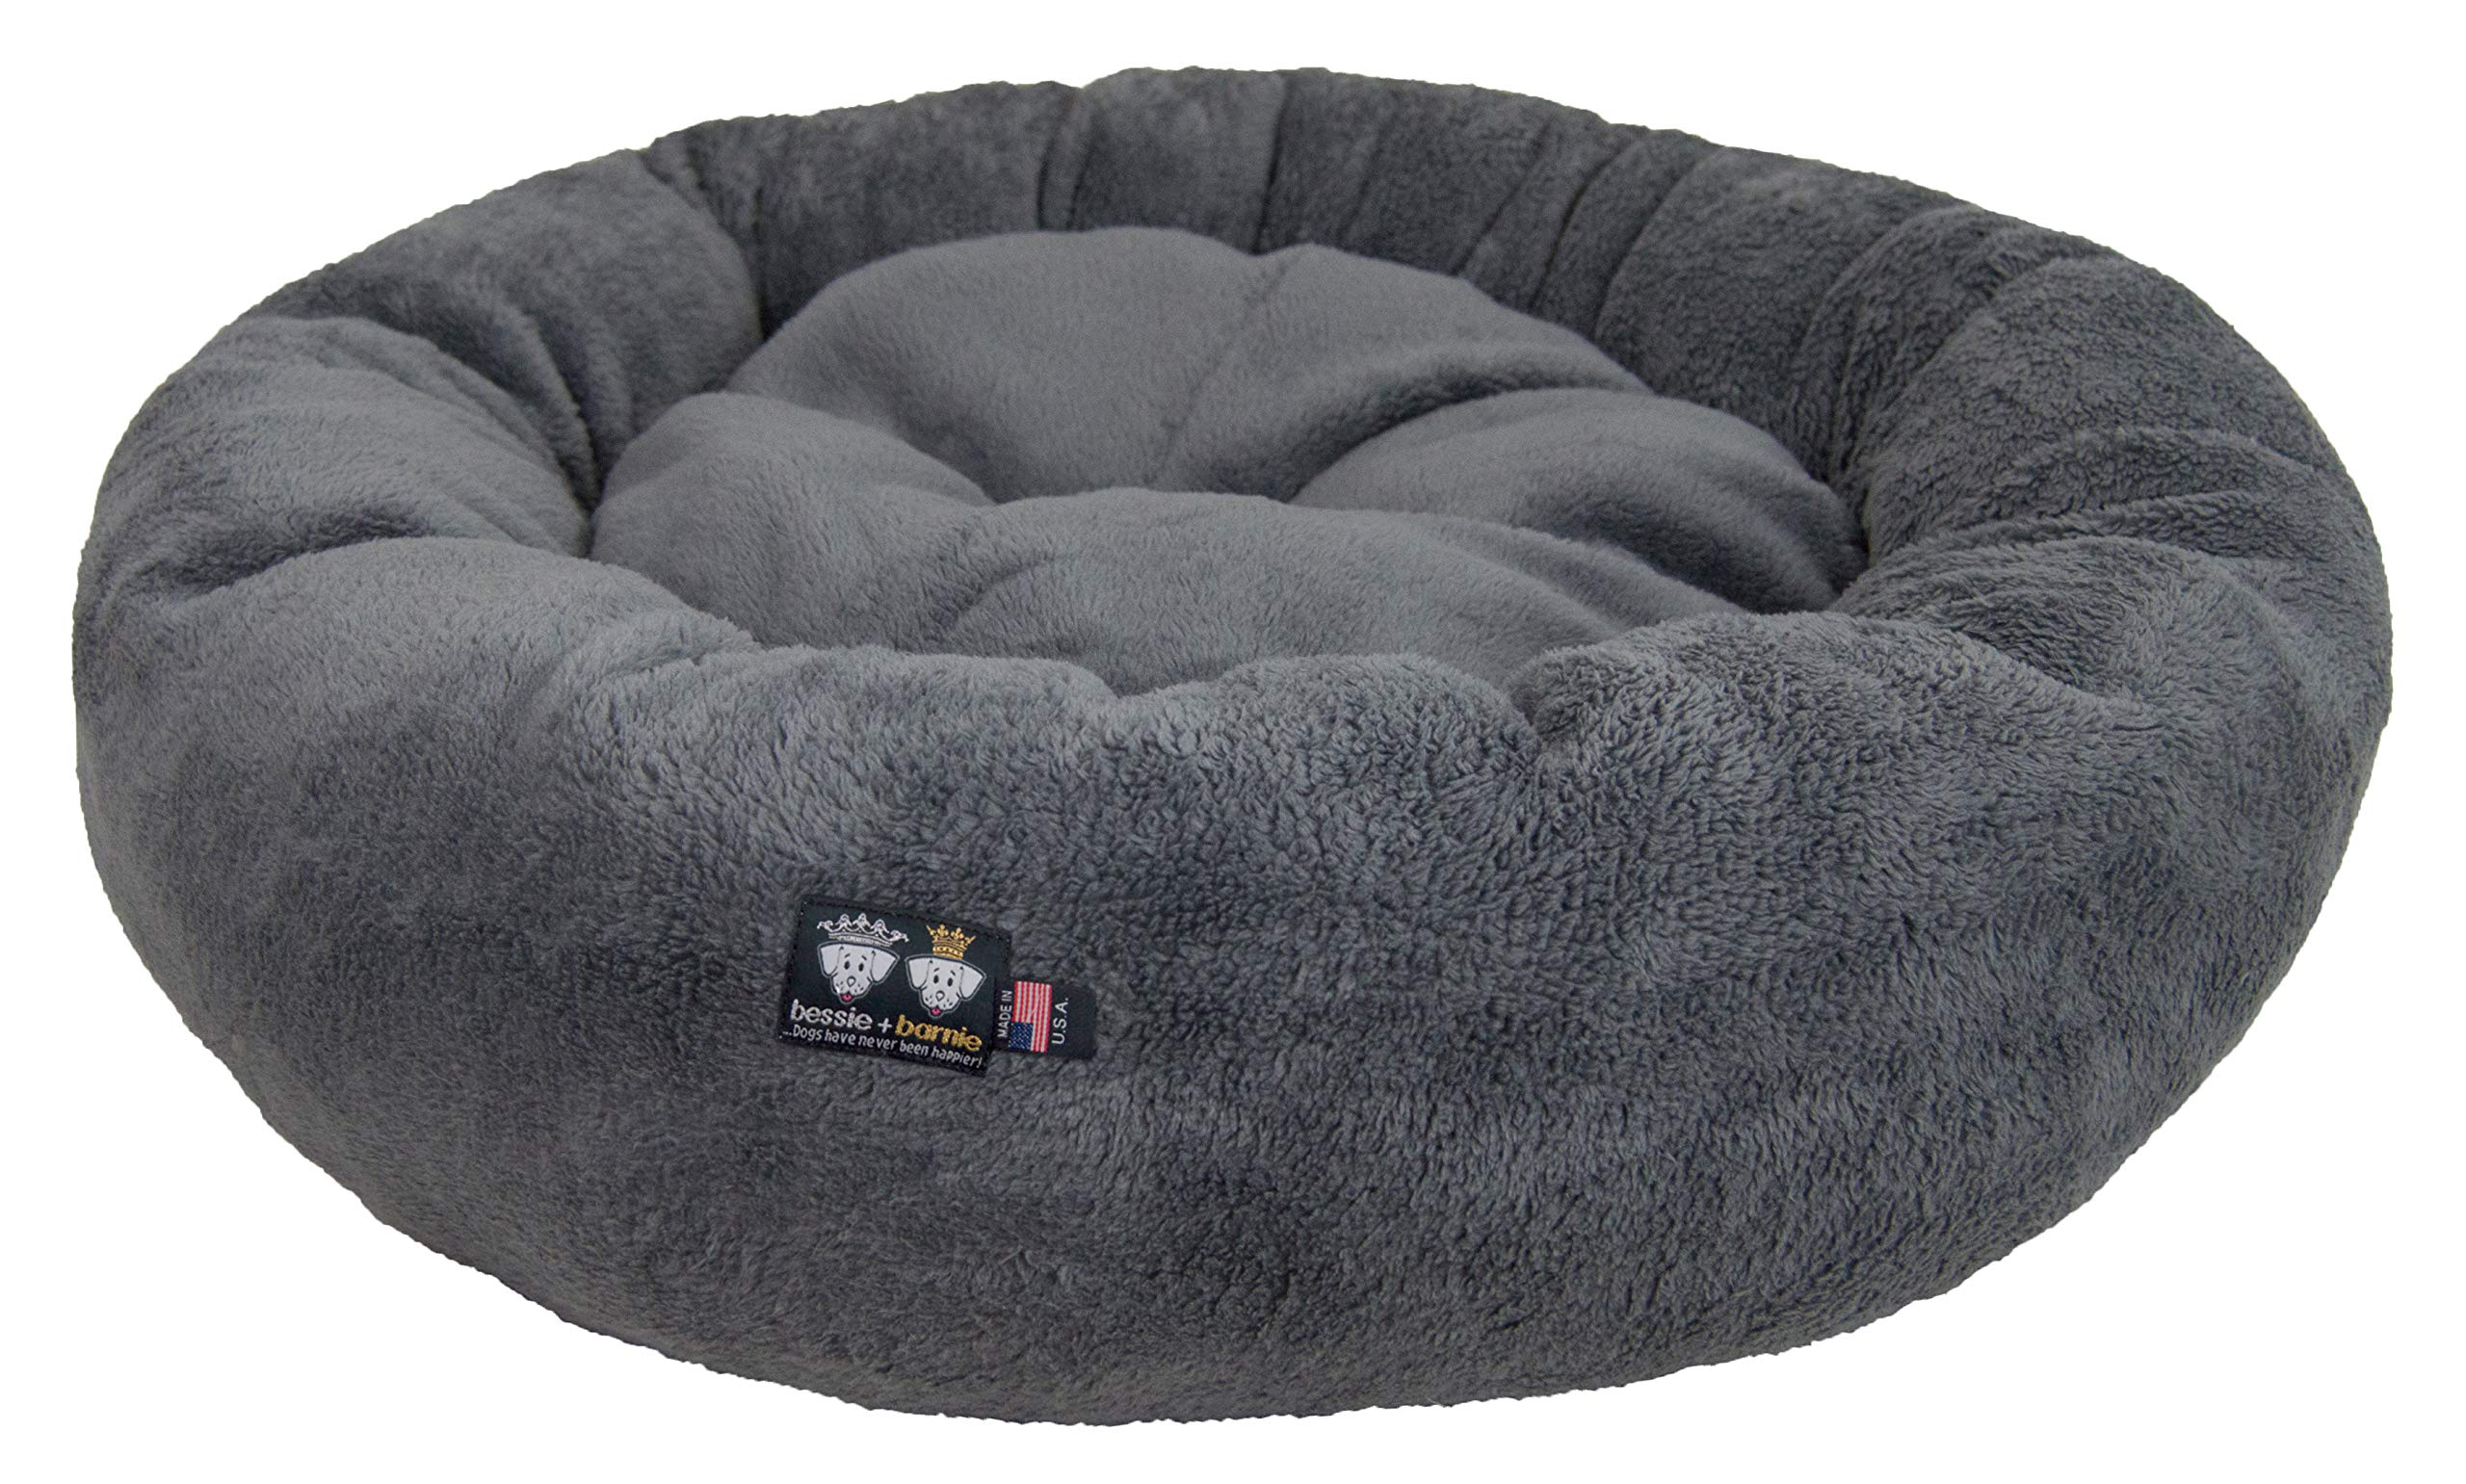 BESSIE AND BARNIE Ultra Plush Deluxe Comfort Pet Dog & Cat Grey Snuggle Bed (Multiple Sizes) - Machine Washable, Made in The USA, Reversible, Durable Soft Fabrics, S - 23'' x 23'', Grey